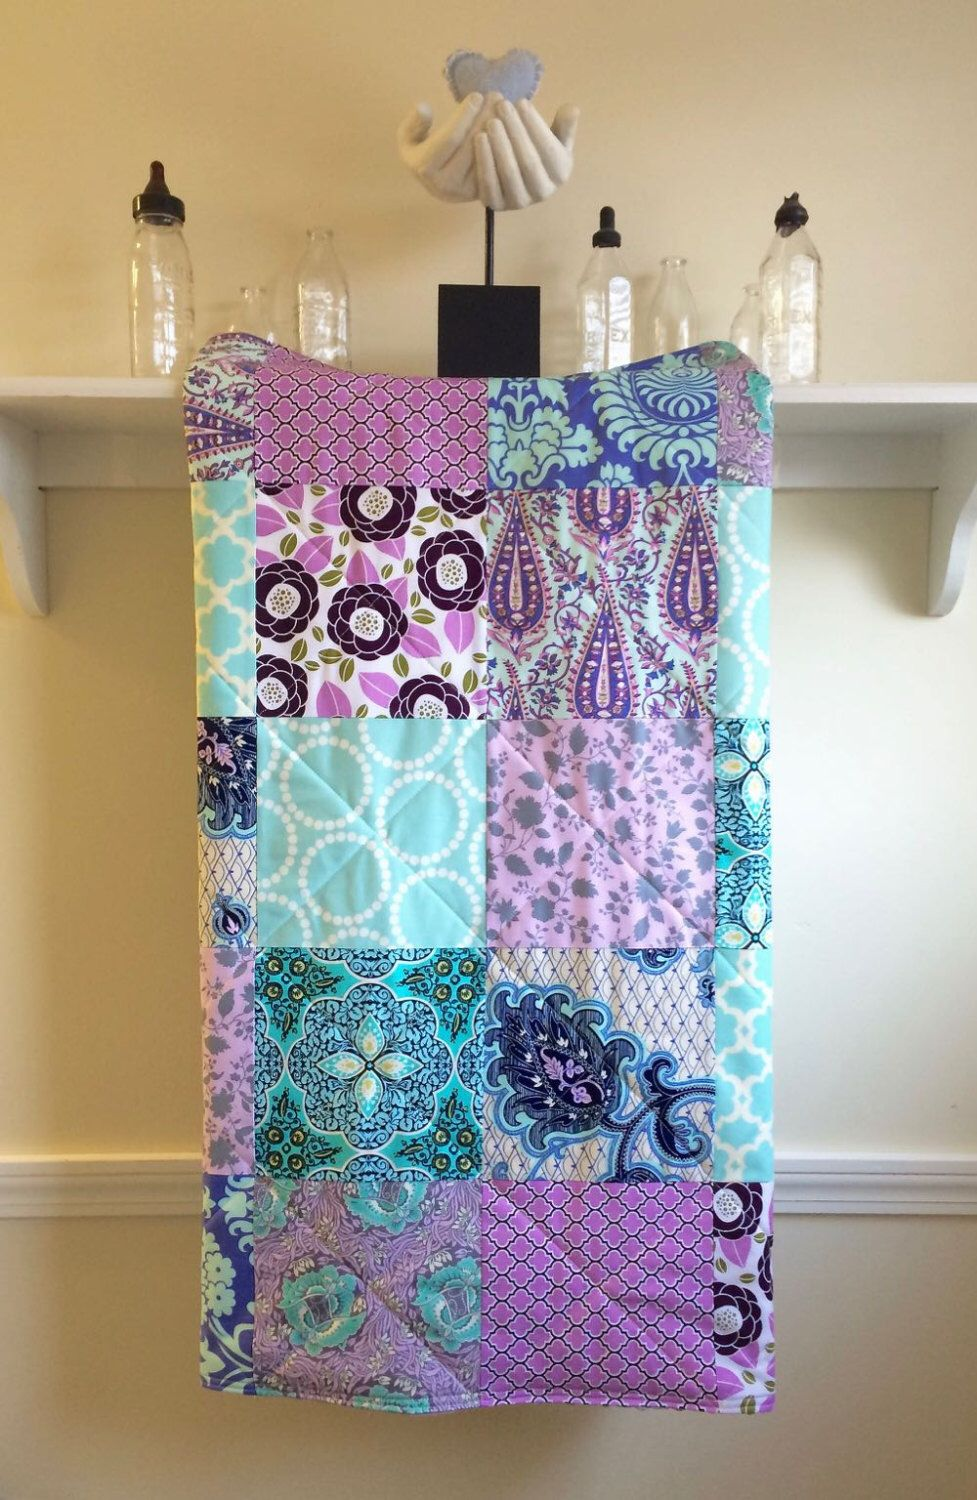 Baby girl paisley bedding - Baby Girl Quilt Lavender And Aqua Patchwork Baby Quilt Girl Handmade Quilt Minky Teal Purple Grey Turquoise Nursery Bedding